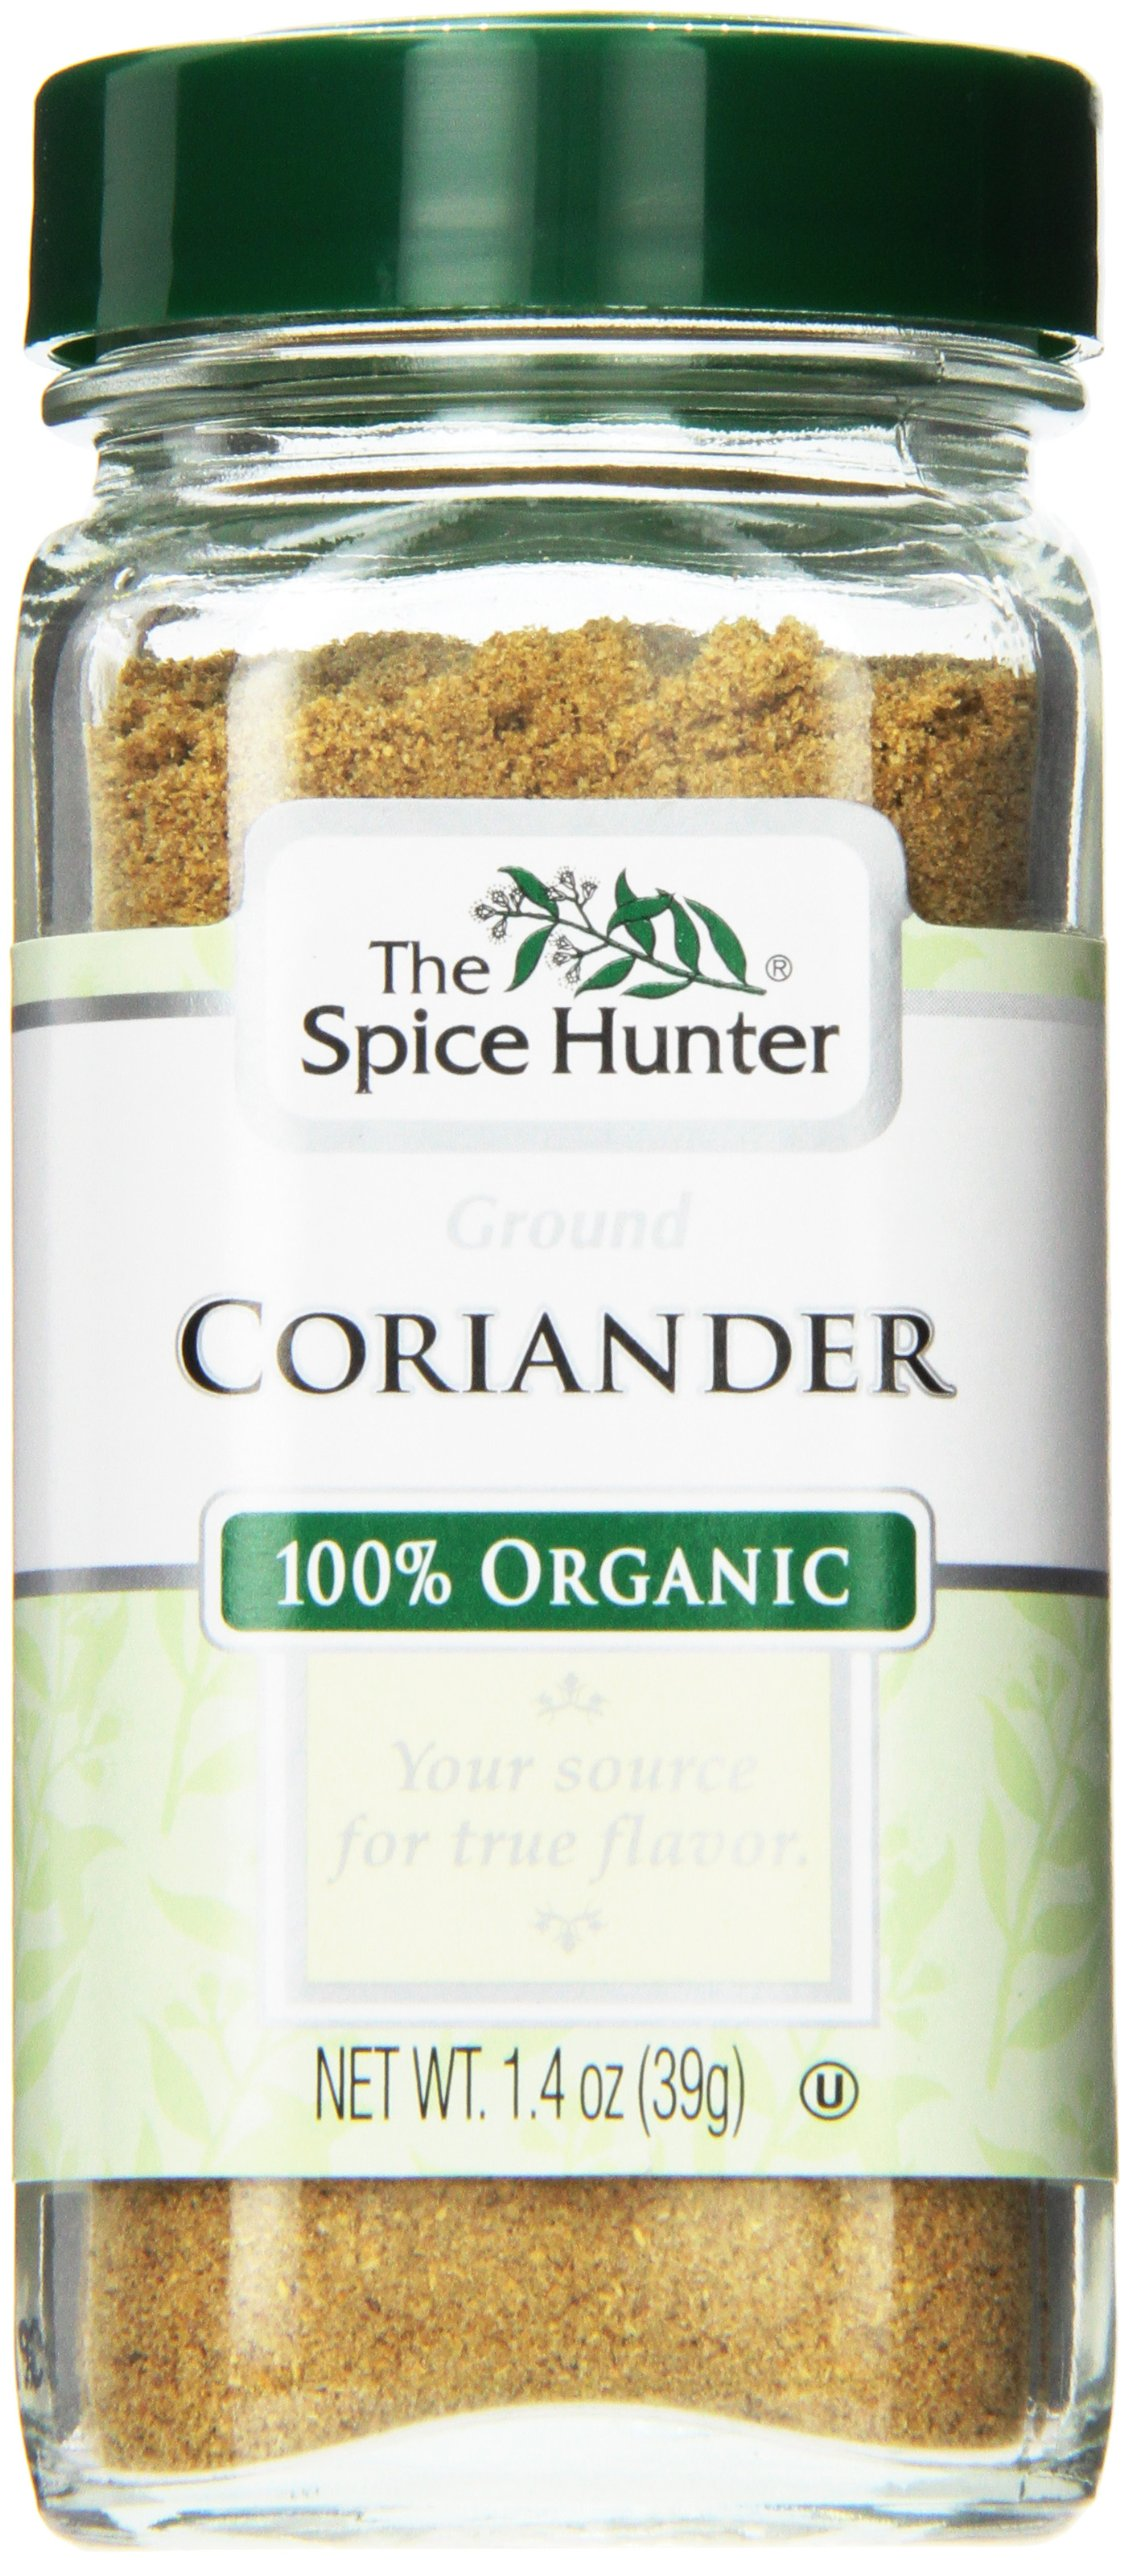 The Spice Hunter Coriander, Ground, Organic, 1.4 Ounce Jar (Pack of 48)